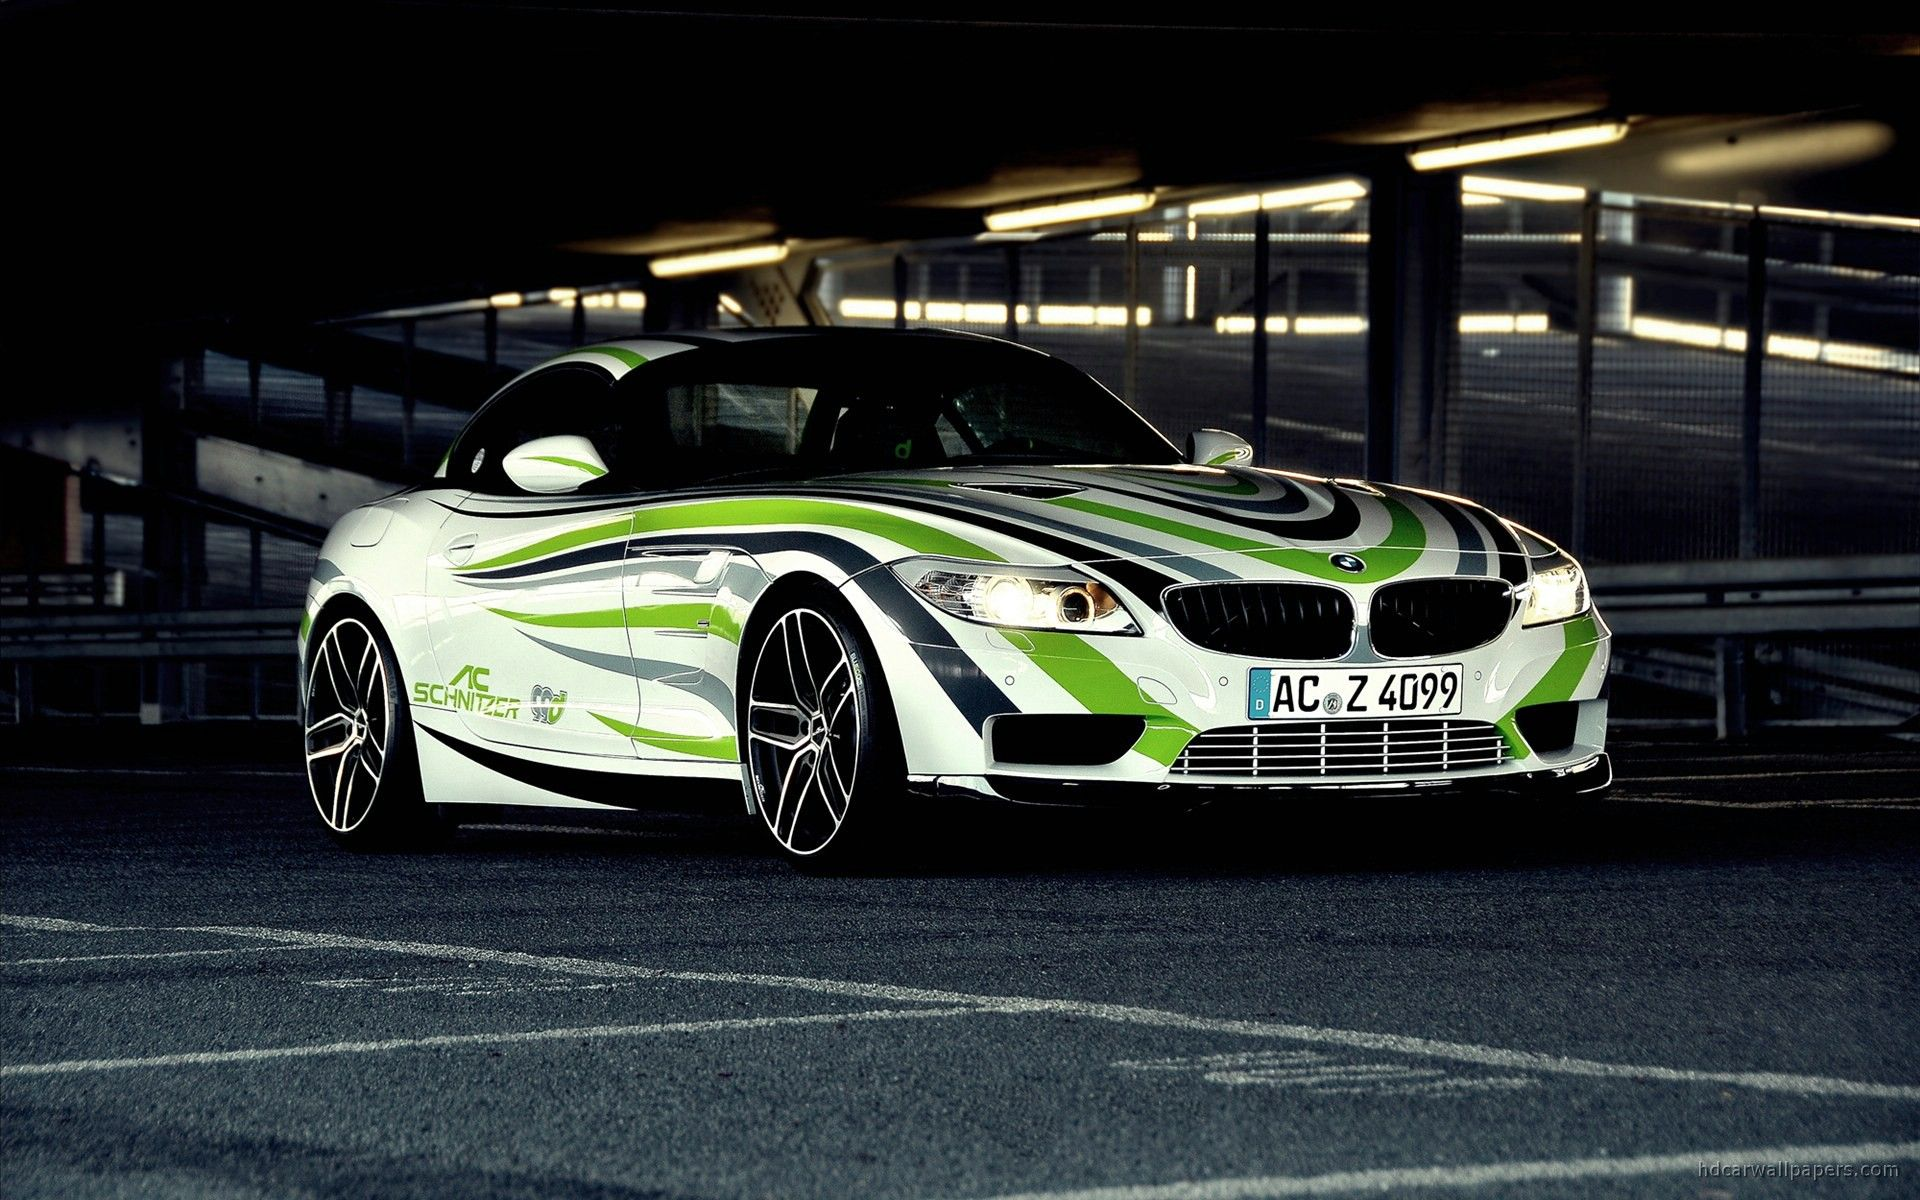 Find this pin and more on i love bmw cars by germcarlover